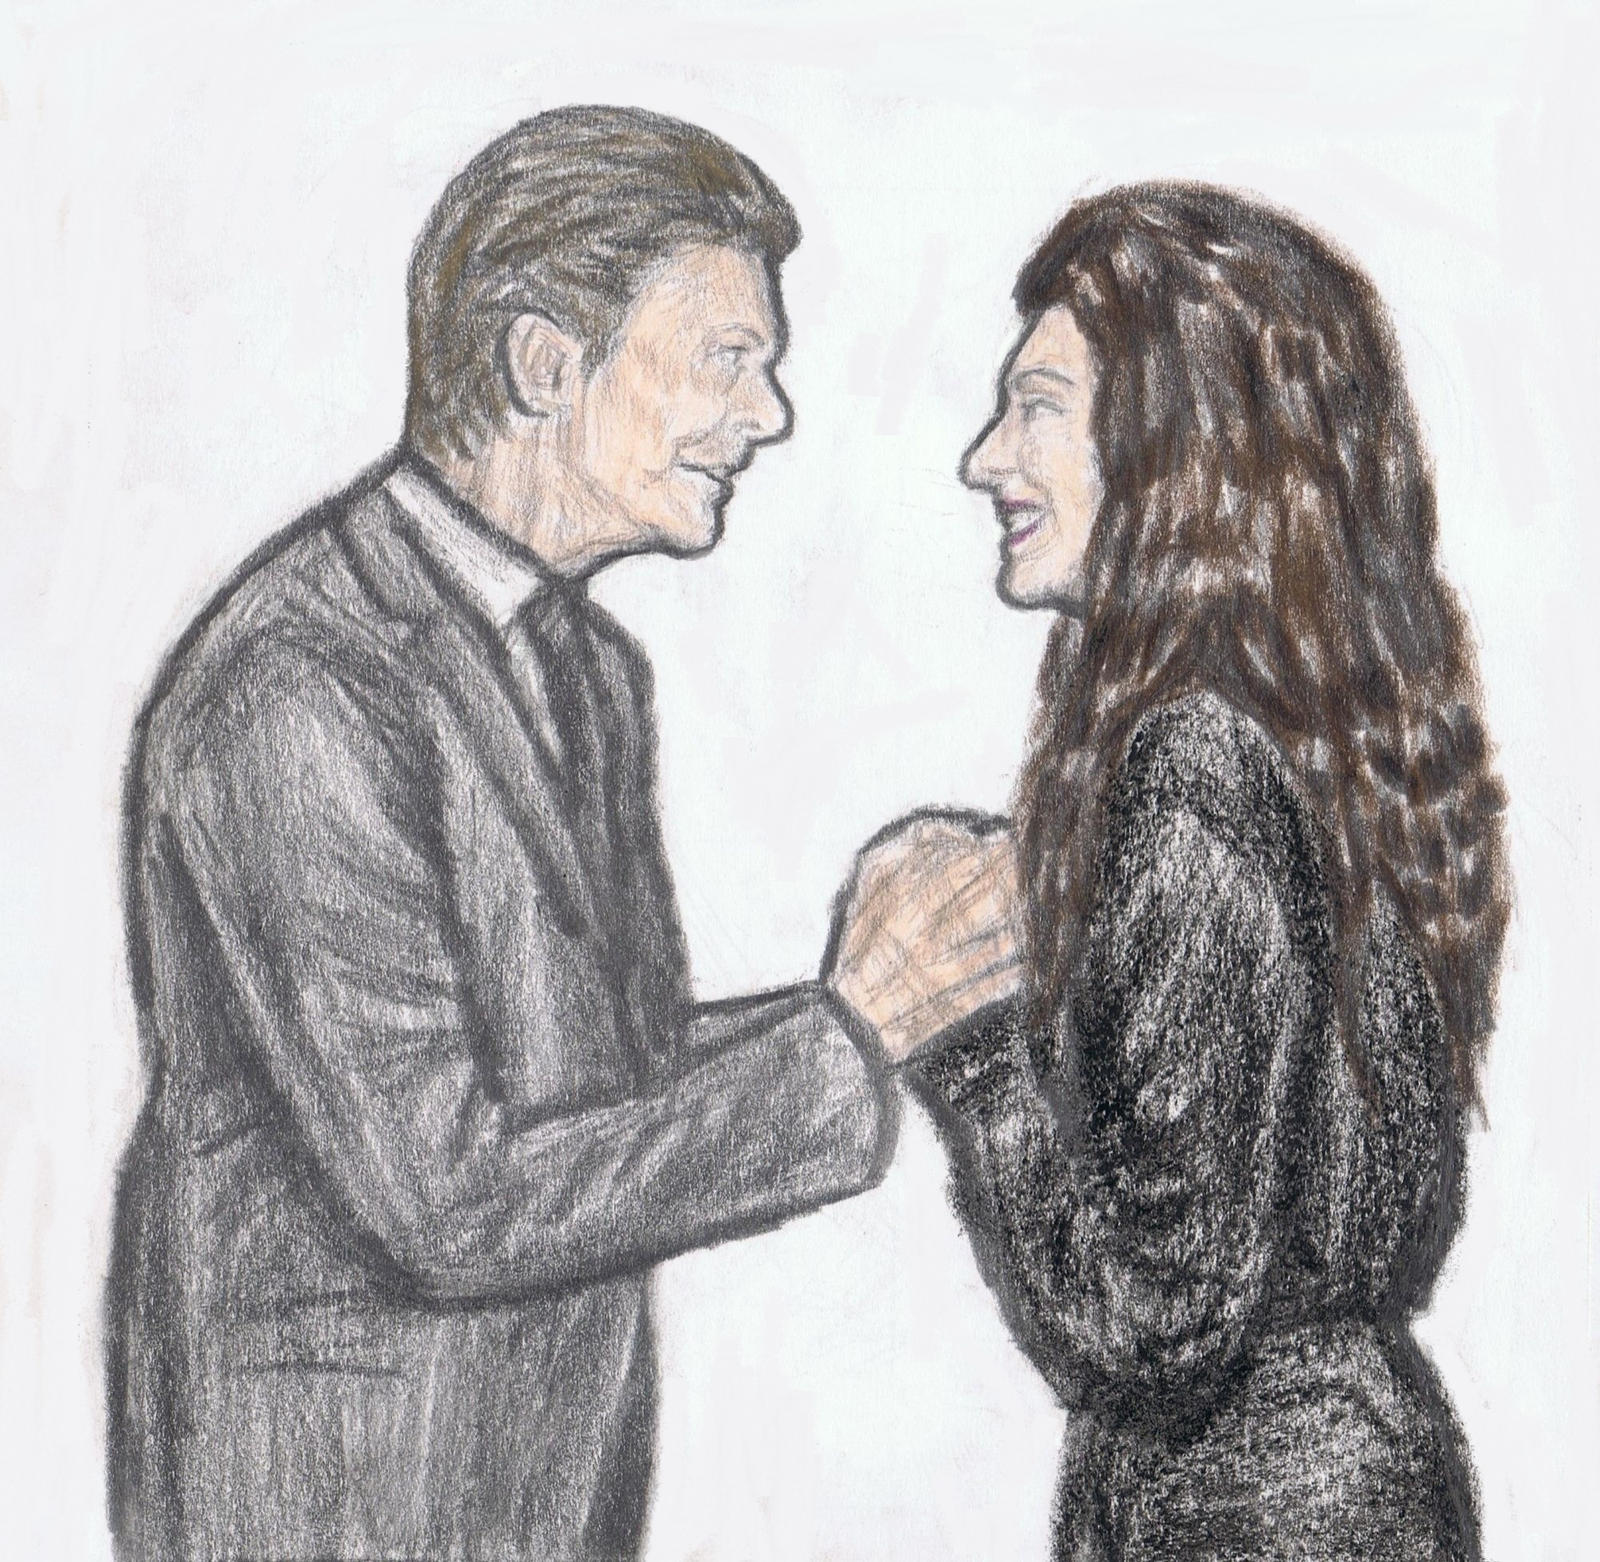 David Bowie talking to Lorde by gagambo